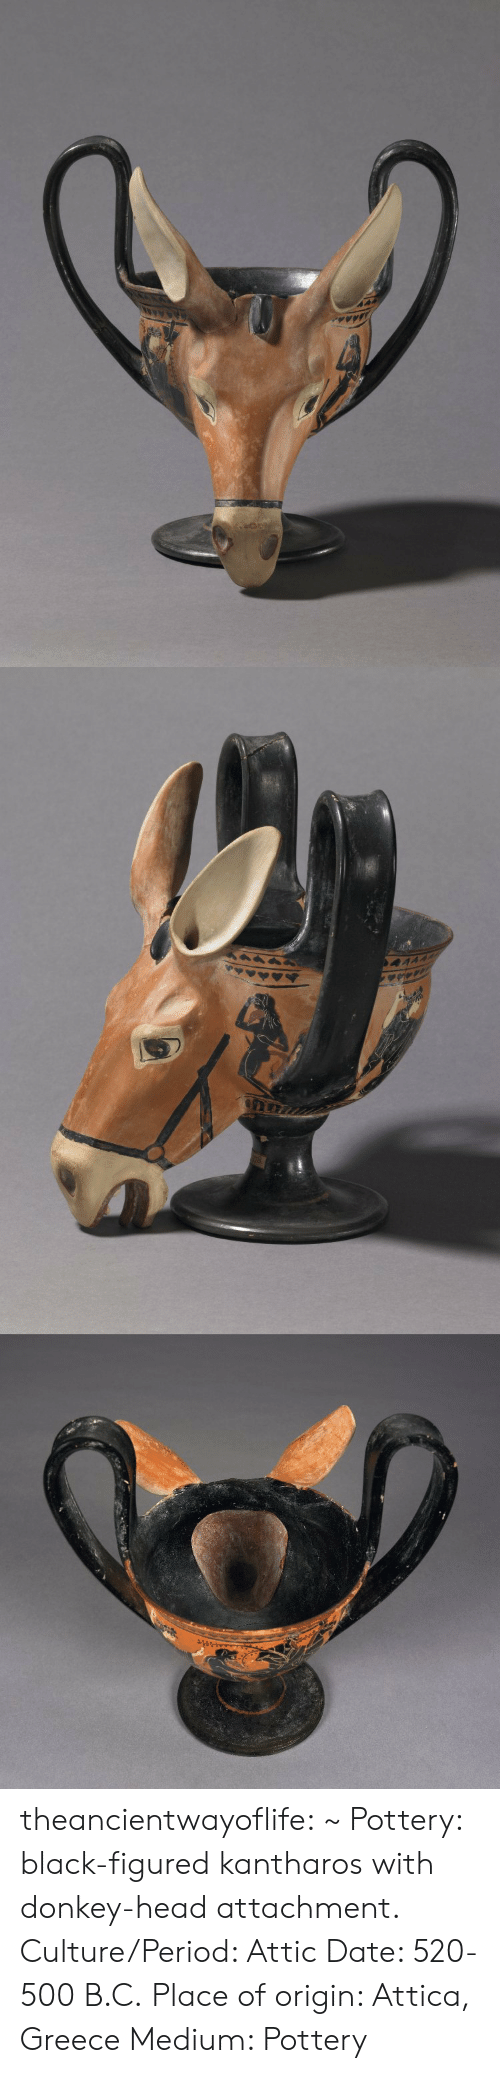 Donkey, Head, and Period: theancientwayoflife:  ~ Pottery: black-figured kantharos with donkey-head attachment. Culture/Period: Attic Date: 520-500 B.C. Place of origin: Attica, Greece Medium: Pottery